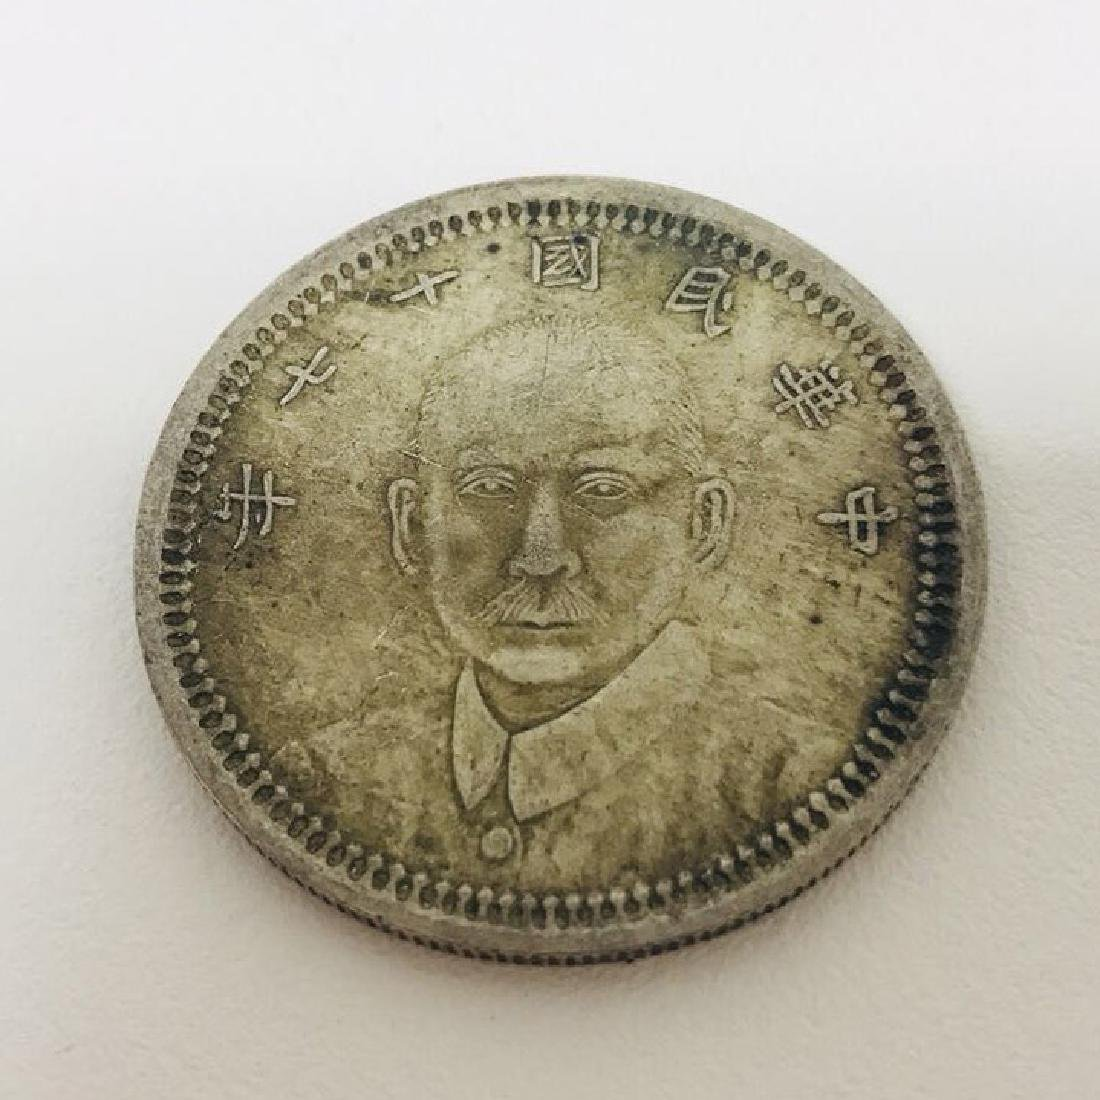 One Dollar silver coin Mark Ming Guo